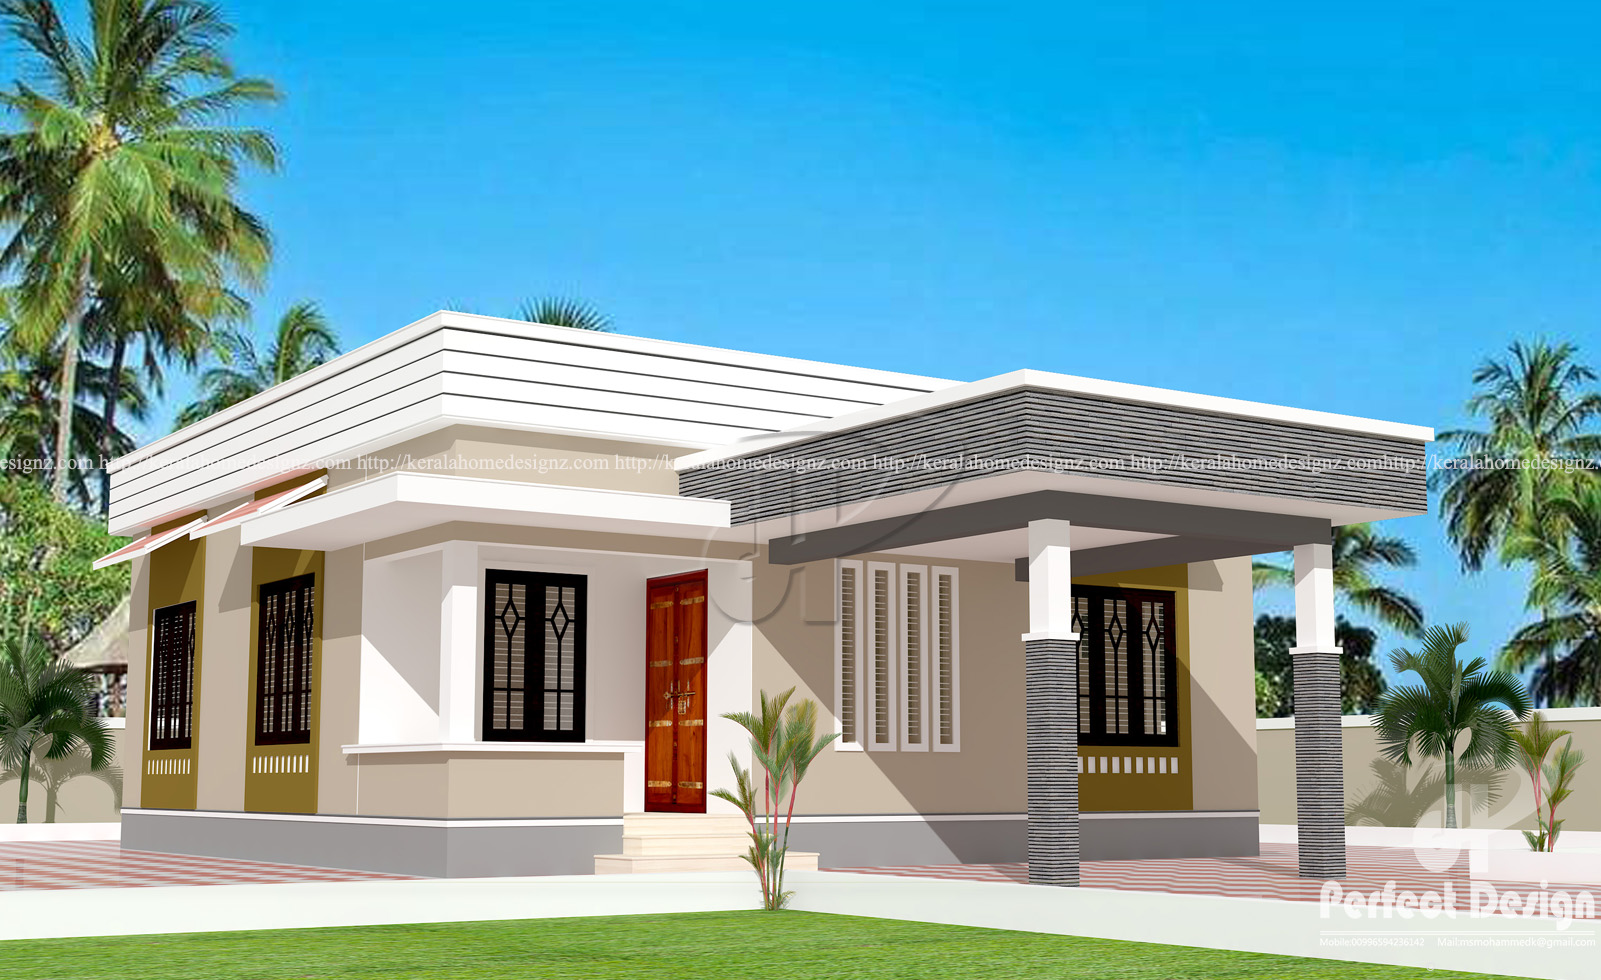 829 sq ft low cost home designs kerala home design for Home by design